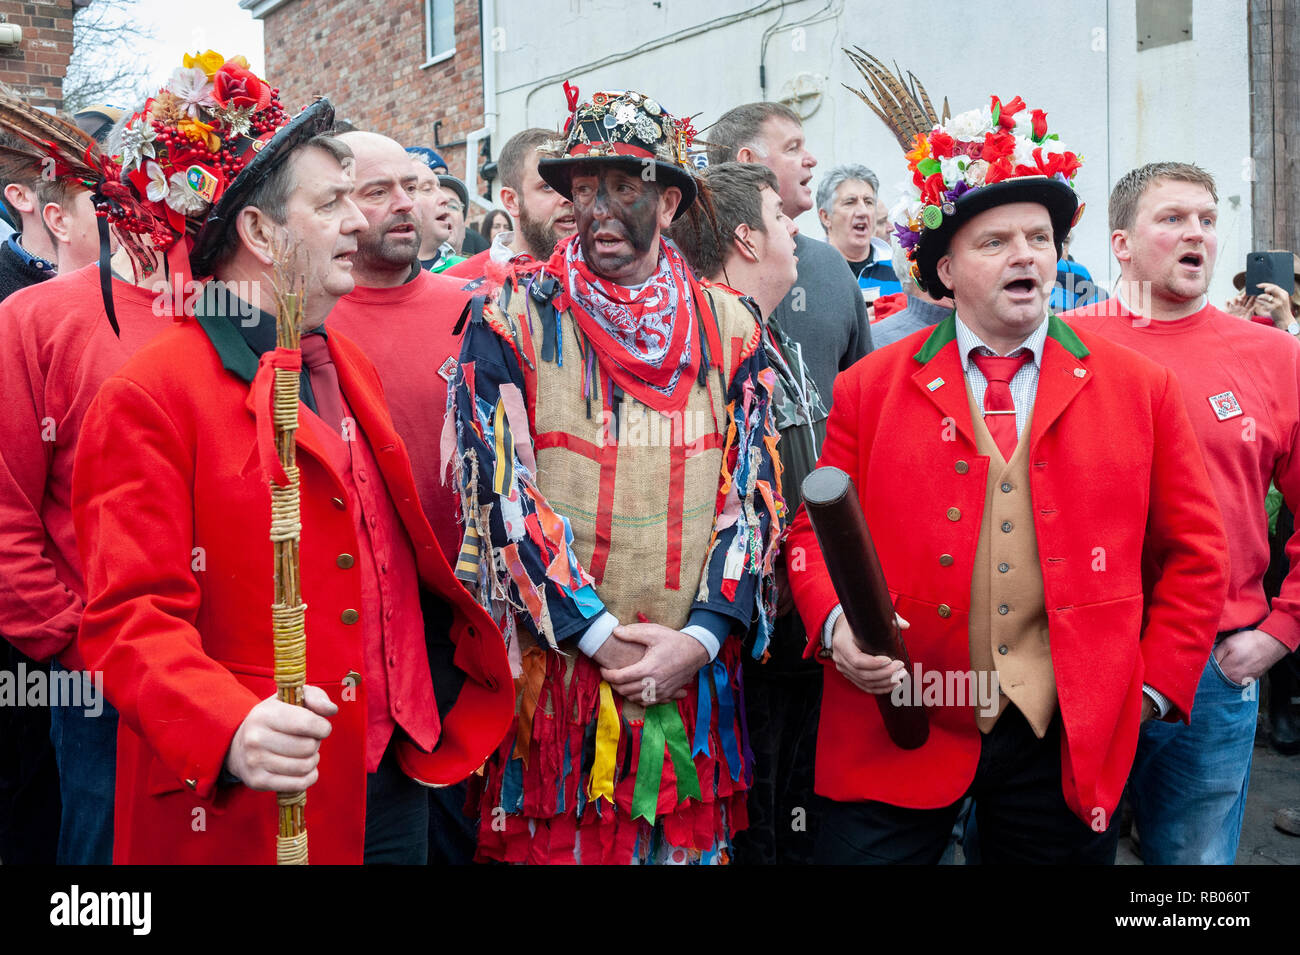 Haxey, Lincolnshire, UK.  5th January 2019.  The village of Haxey have been practicing the ancient tradition since the 14th Century.  It is believed to be the oldest local tradition in England. Known as the Haxey Hood it is most easily described as a sort of rugby match, with unlimited participants and few rules, as a leather tube is slowly walked by the large unorganised rugby scrum to one of four local pubs, where it remains until the following years game.  Credit:  Matt Limb OBE/Alamy Live News - Stock Image